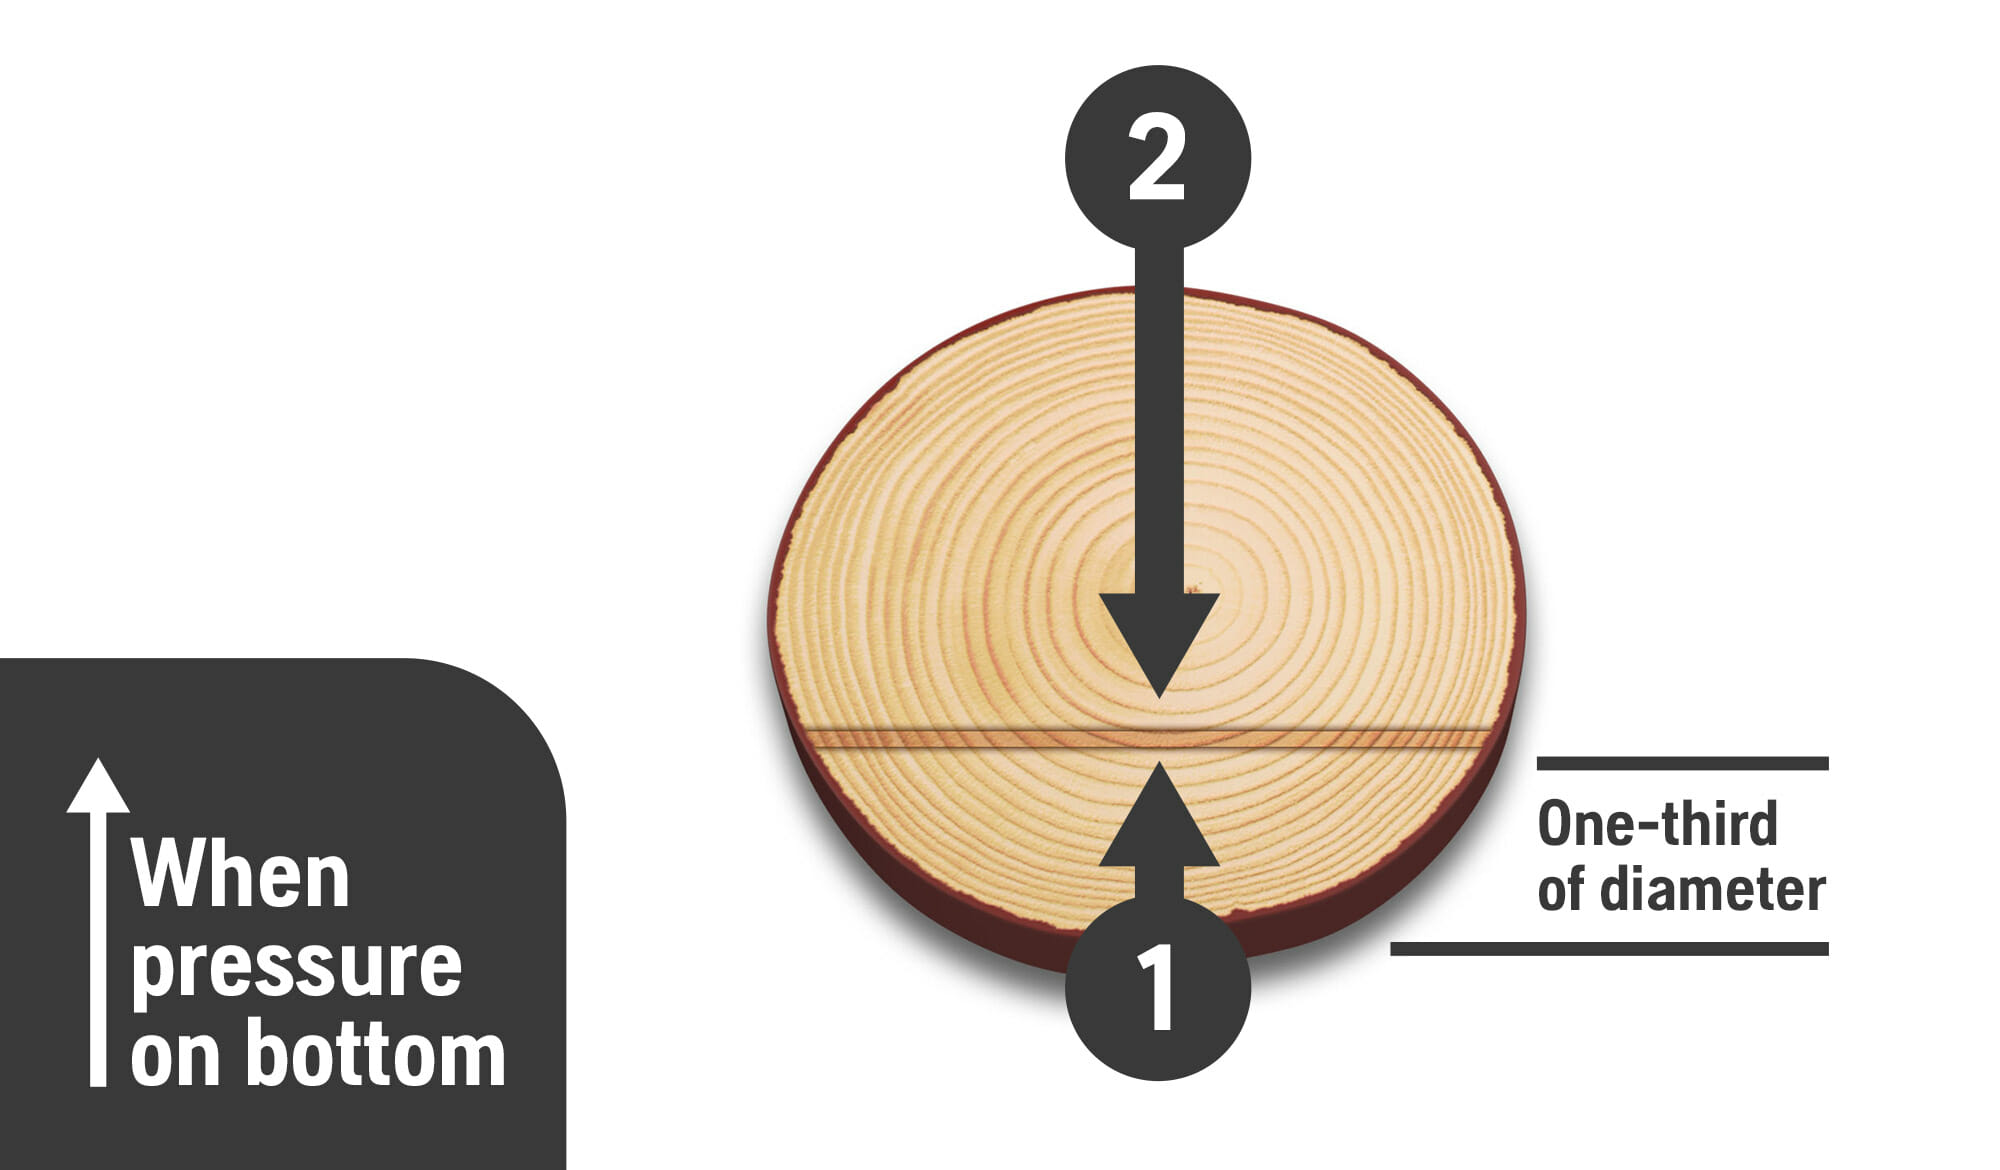 Illustration showing basic crosscutting technique when the pressure is on the bottom of the trunk